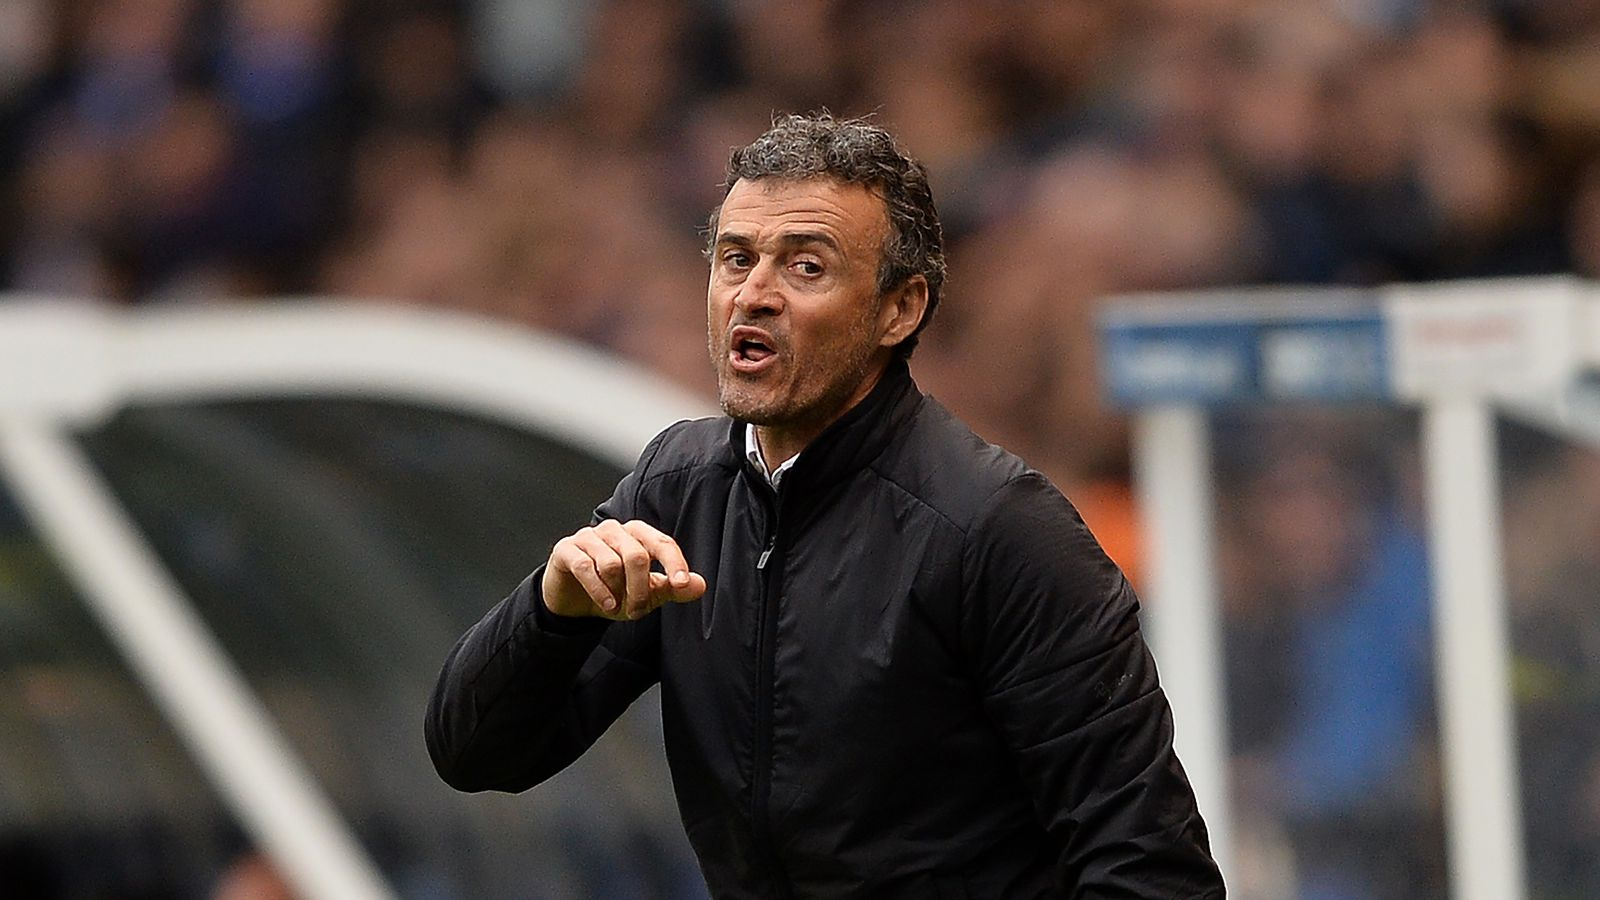 luis enrique - photo #19